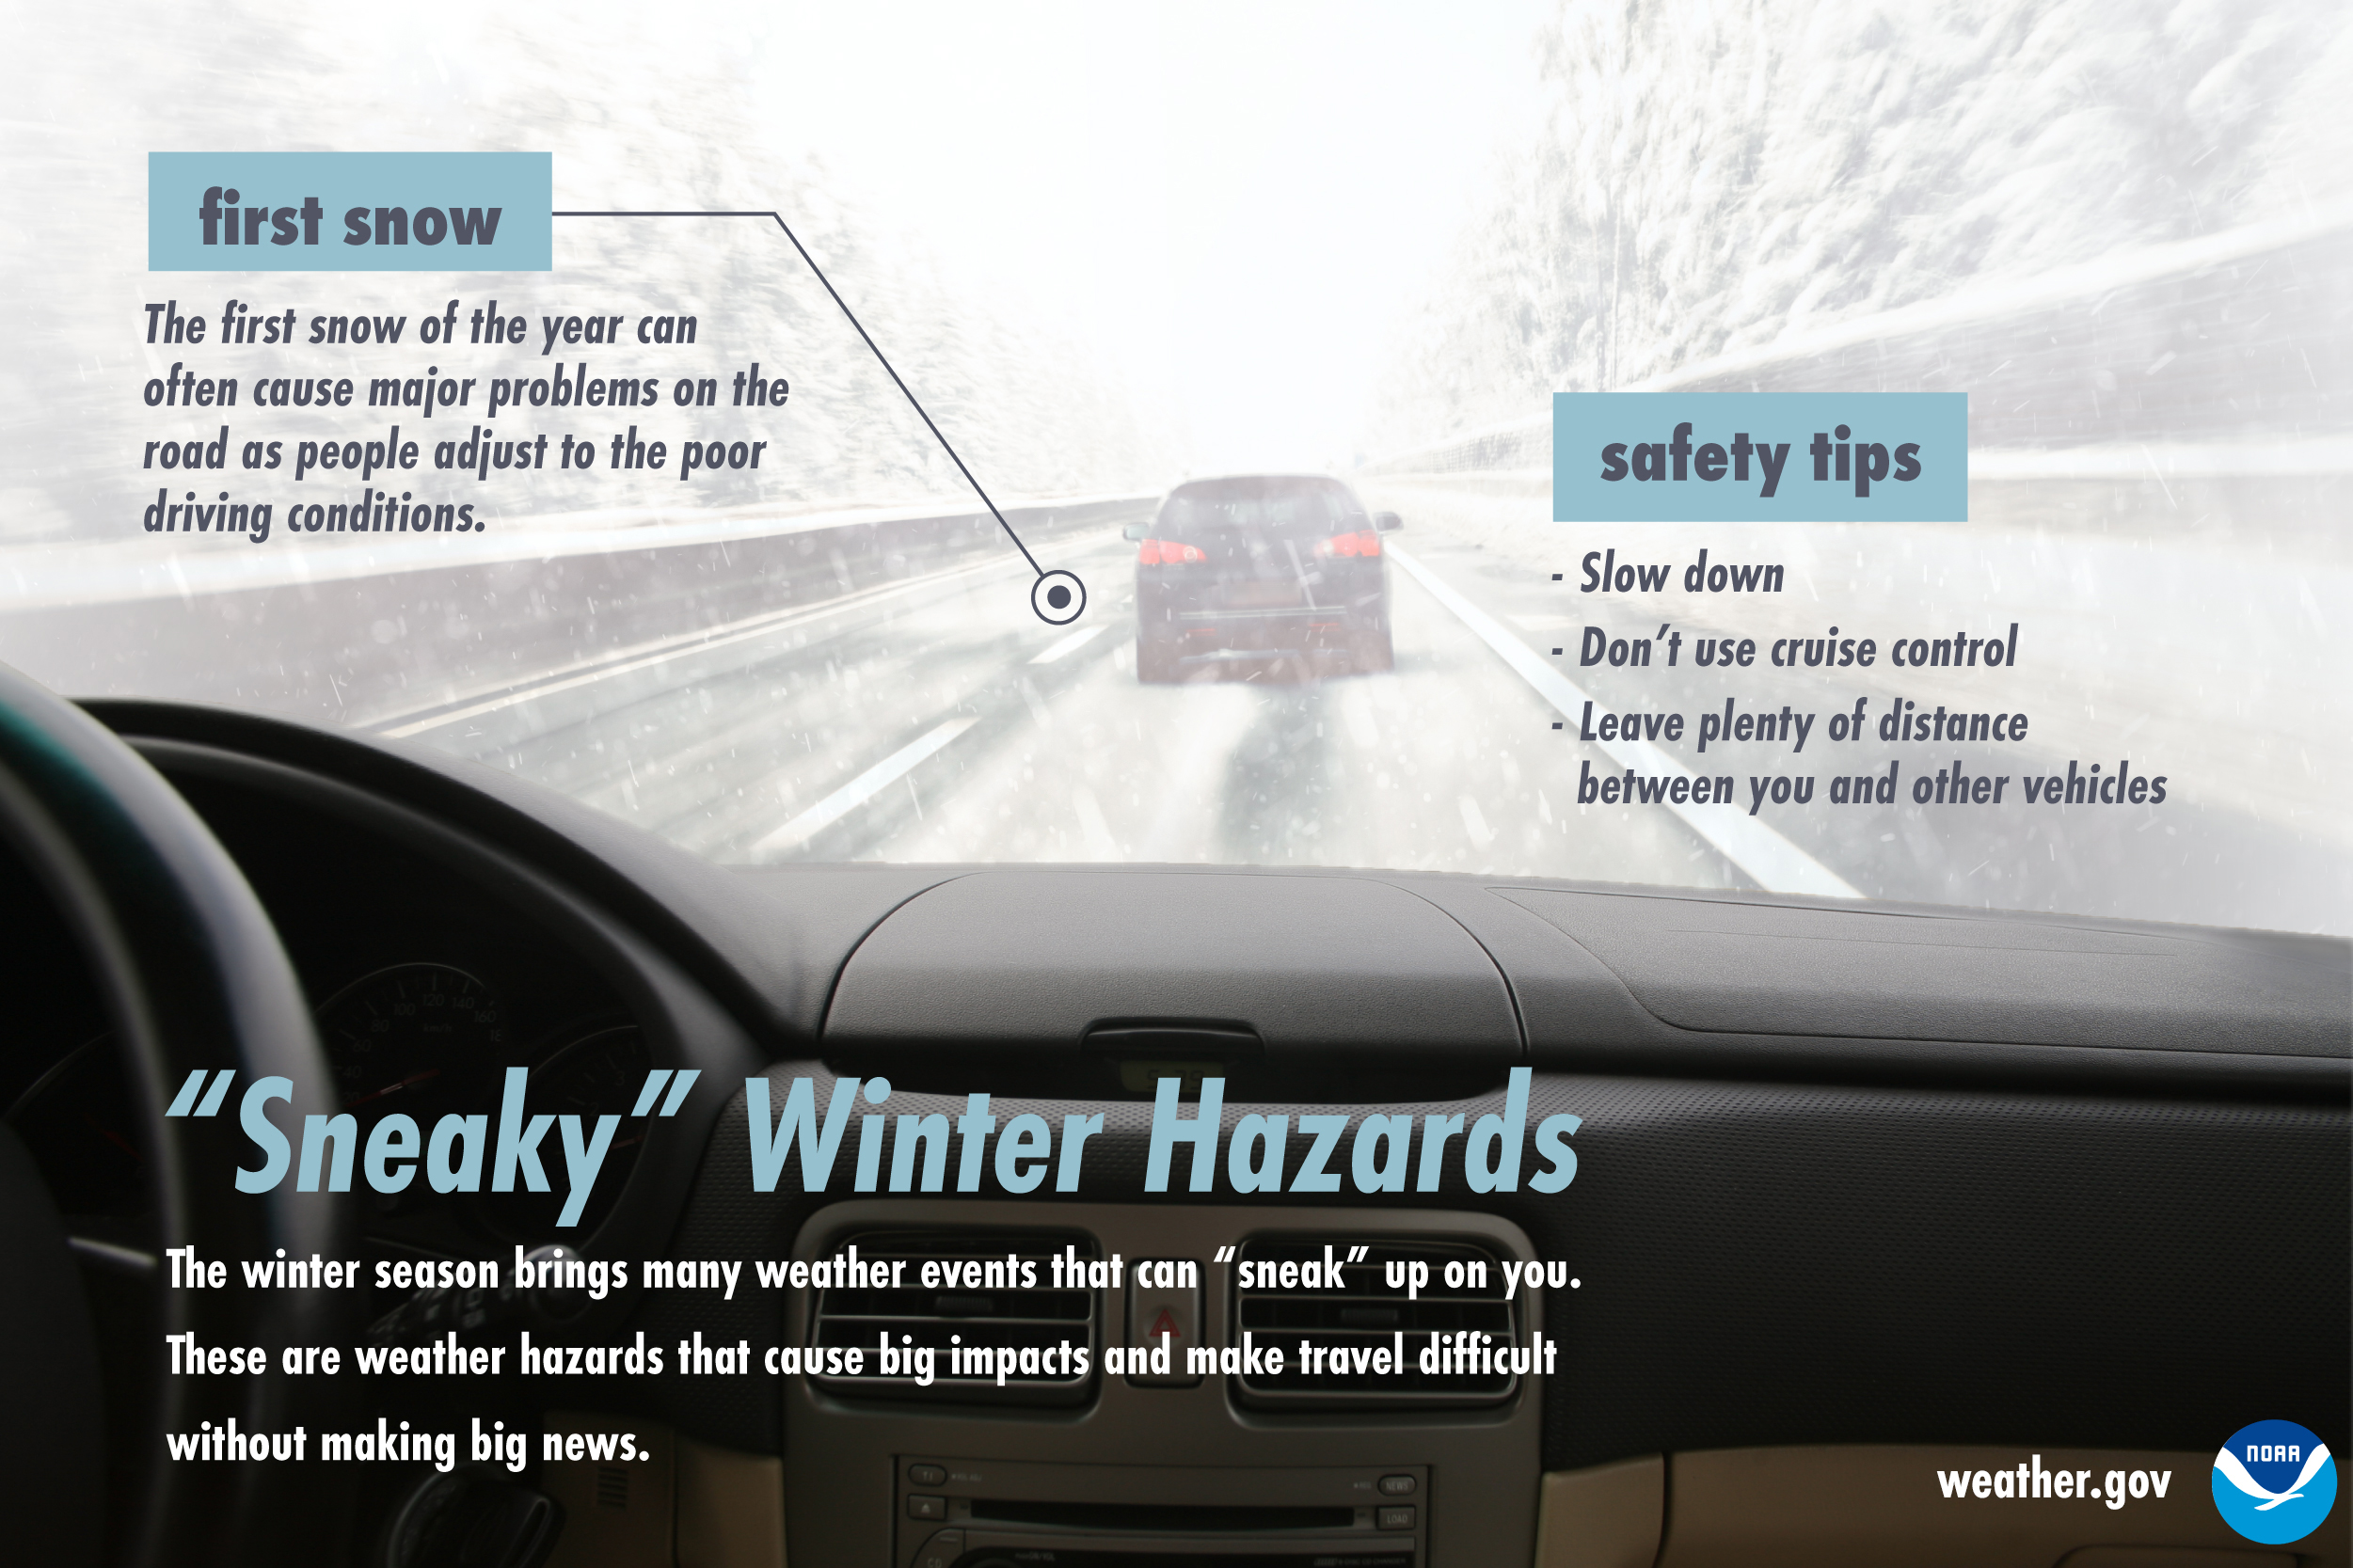 Sneaky Winter Hazards: First snow.